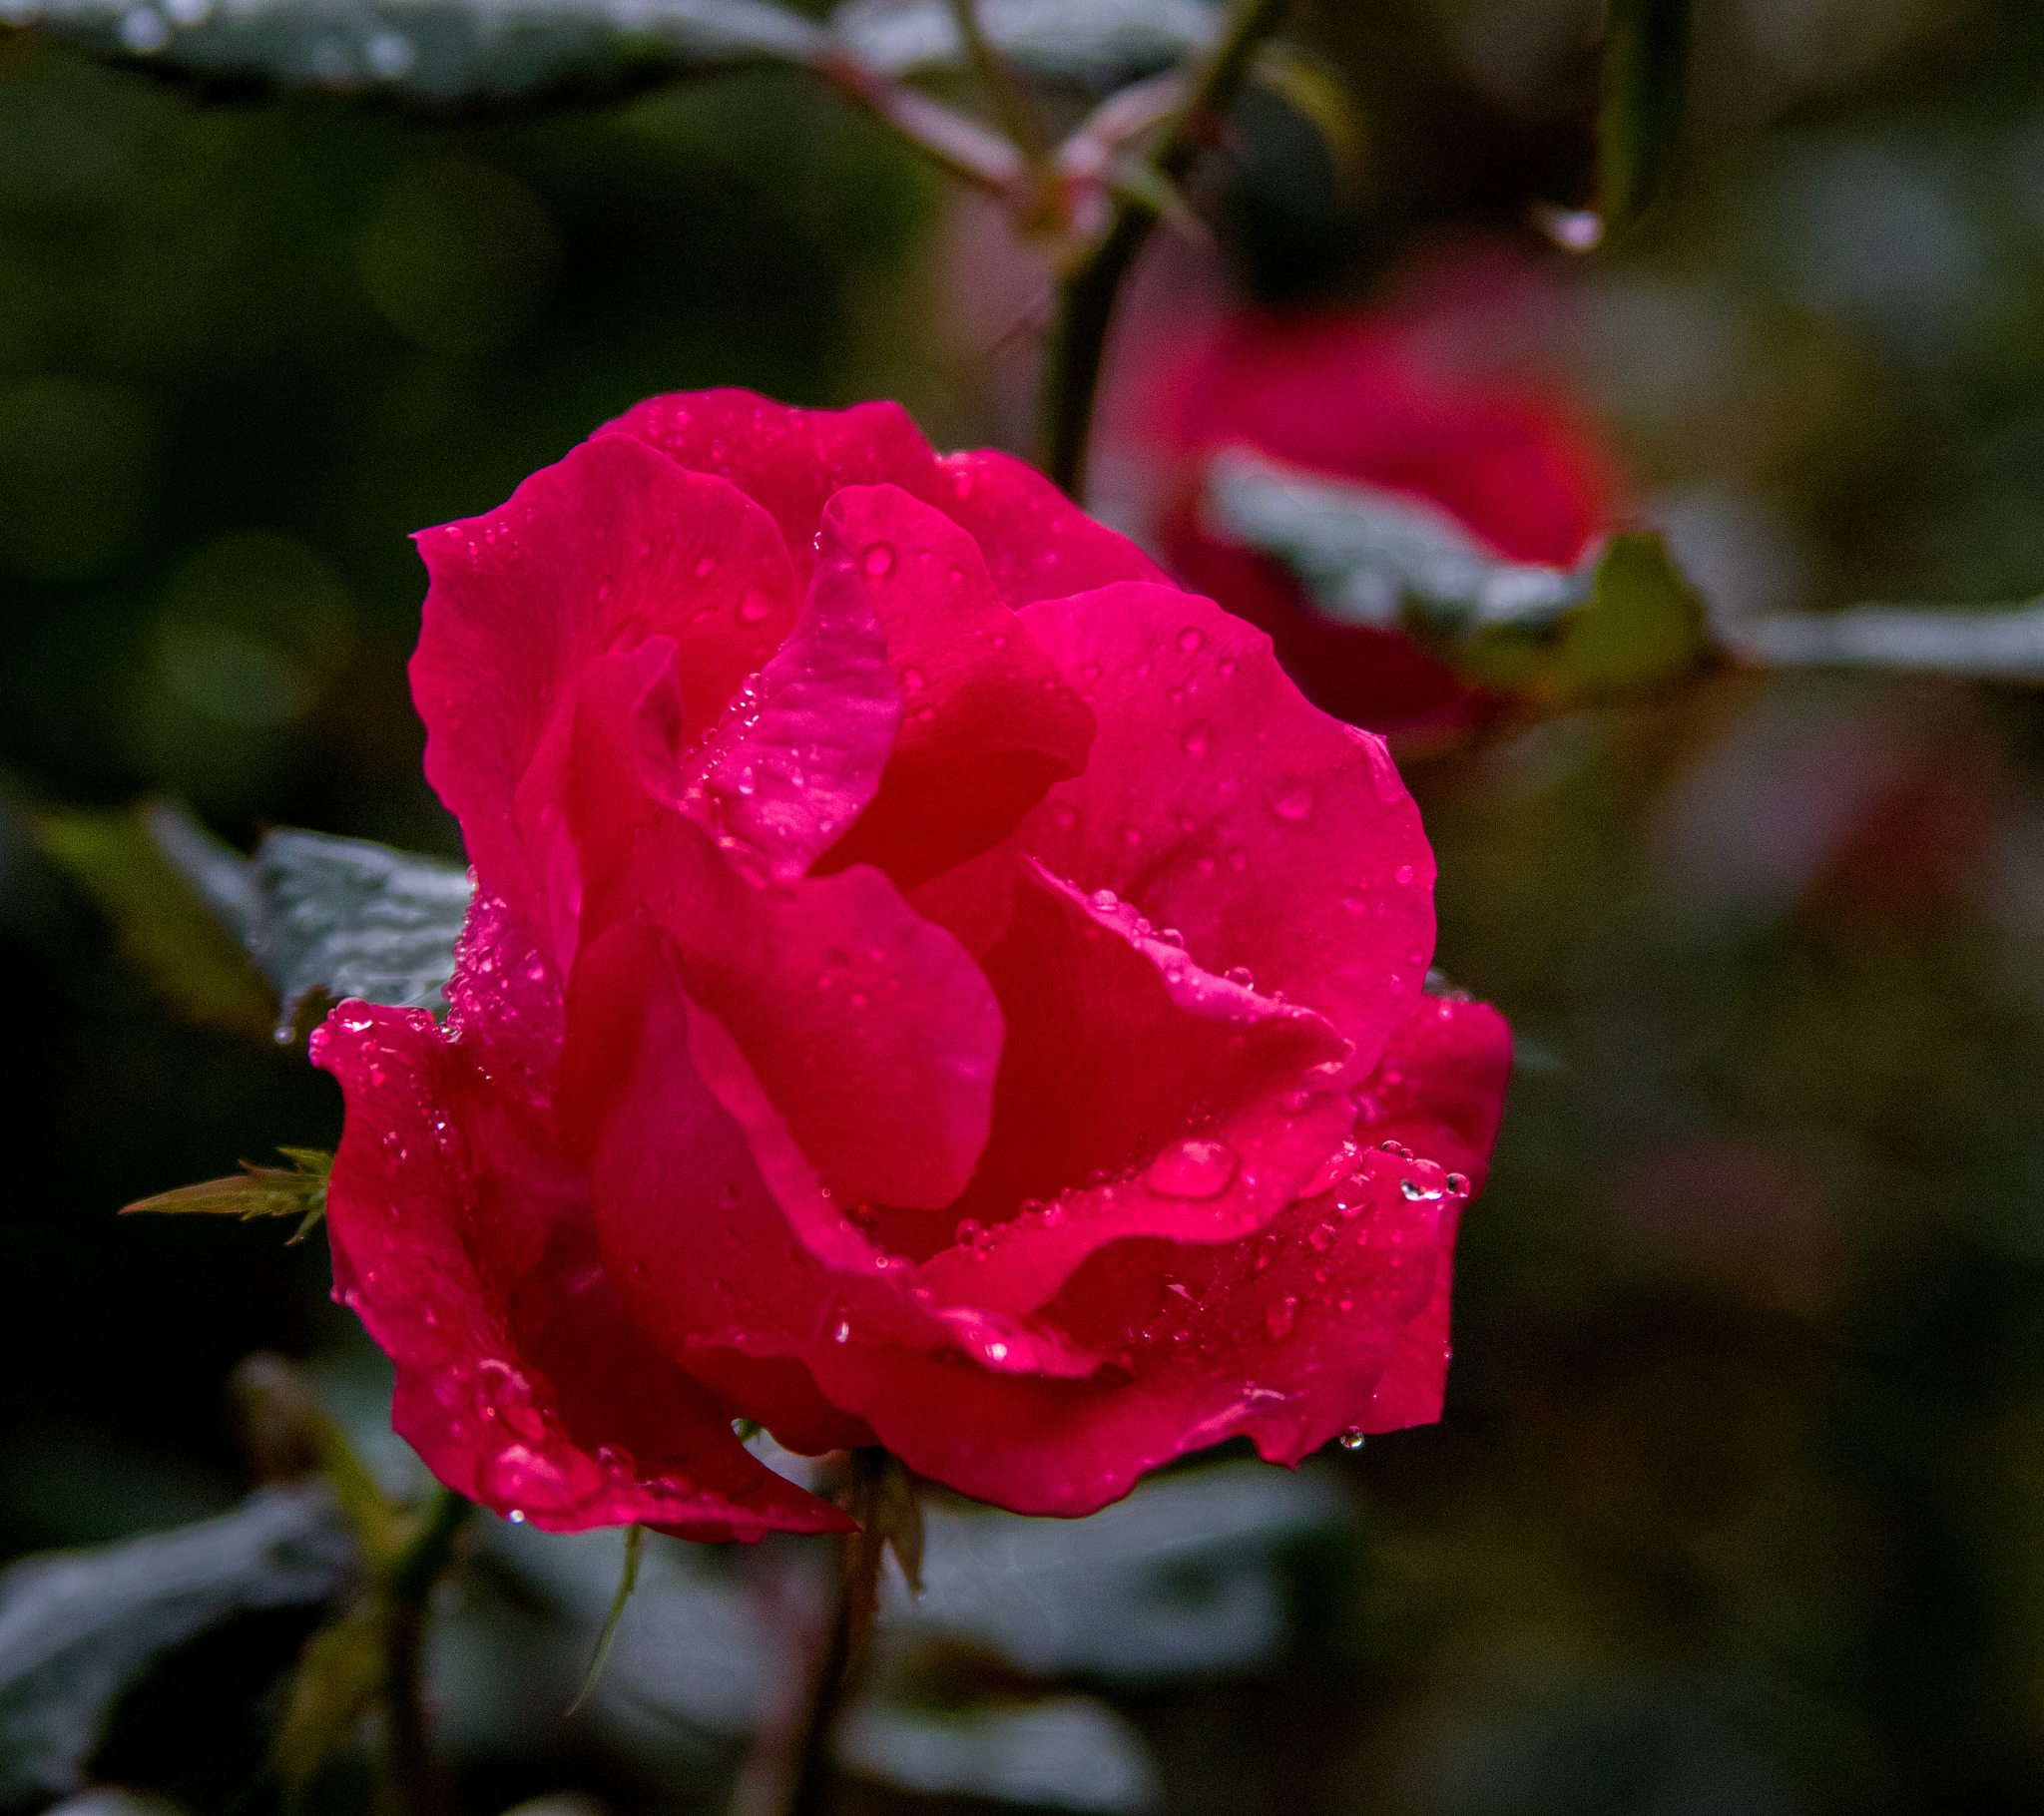 Rose in the rain by James Means